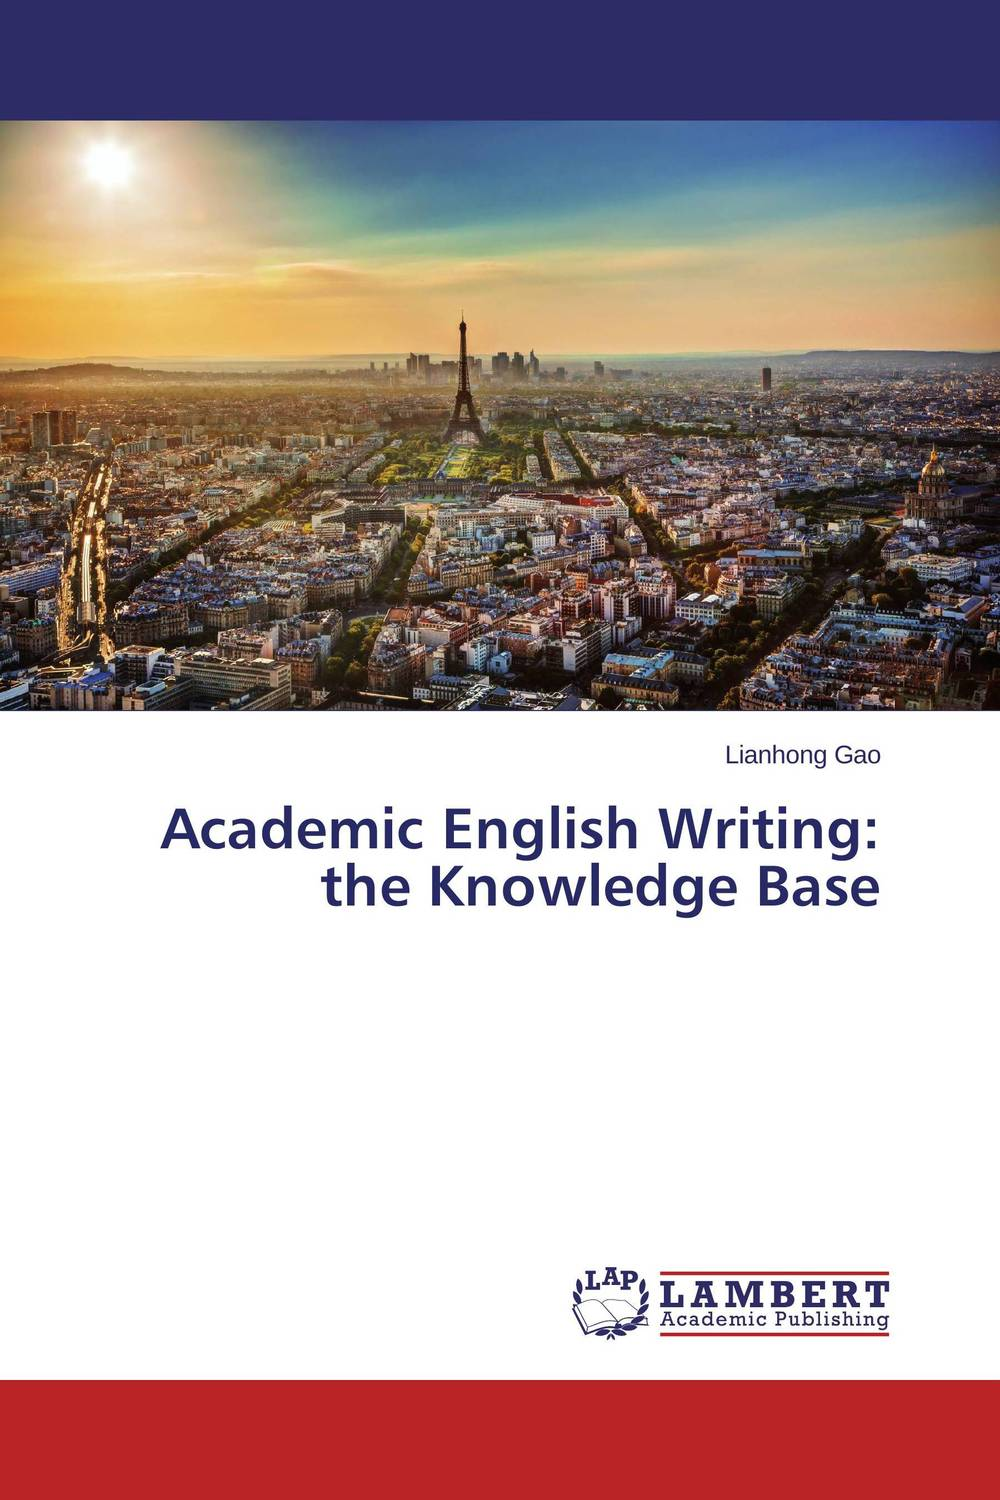 Academic English Writing: the Knowledge Base hewings martin thaine craig cambridge academic english advanced students book